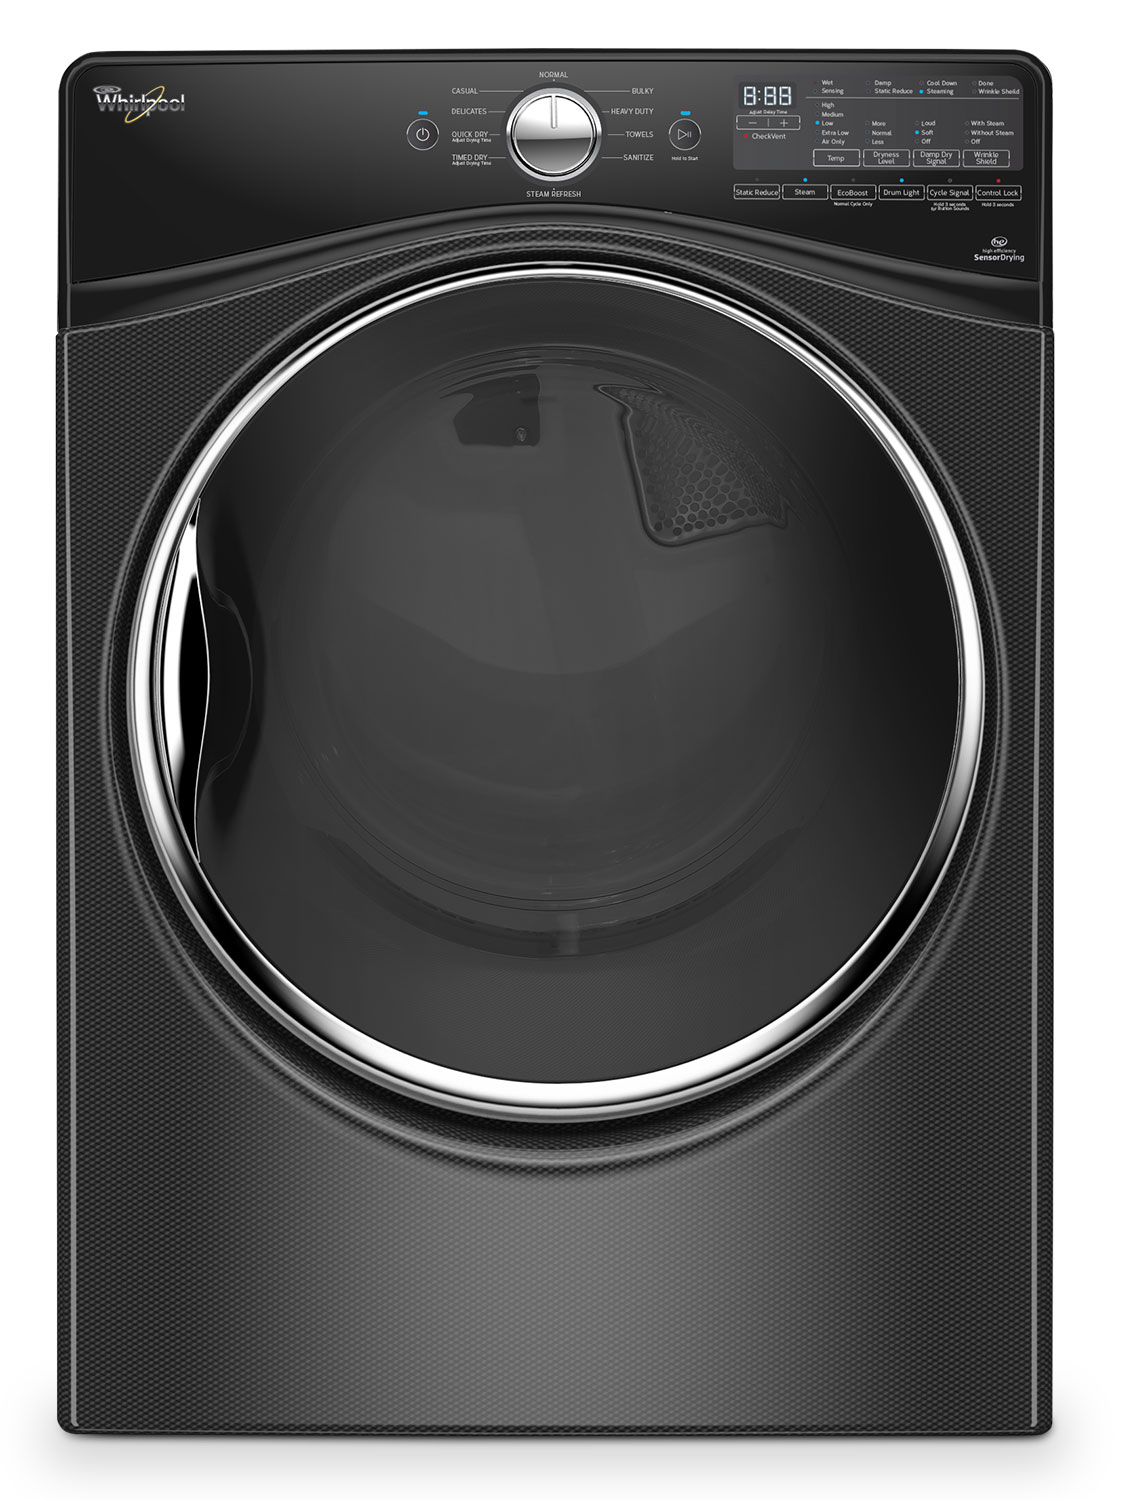 Washers and Dryers - Whirpool Black Diamond Gas Dryer (7.4 Cu. Ft.) - WGD92HEFBD